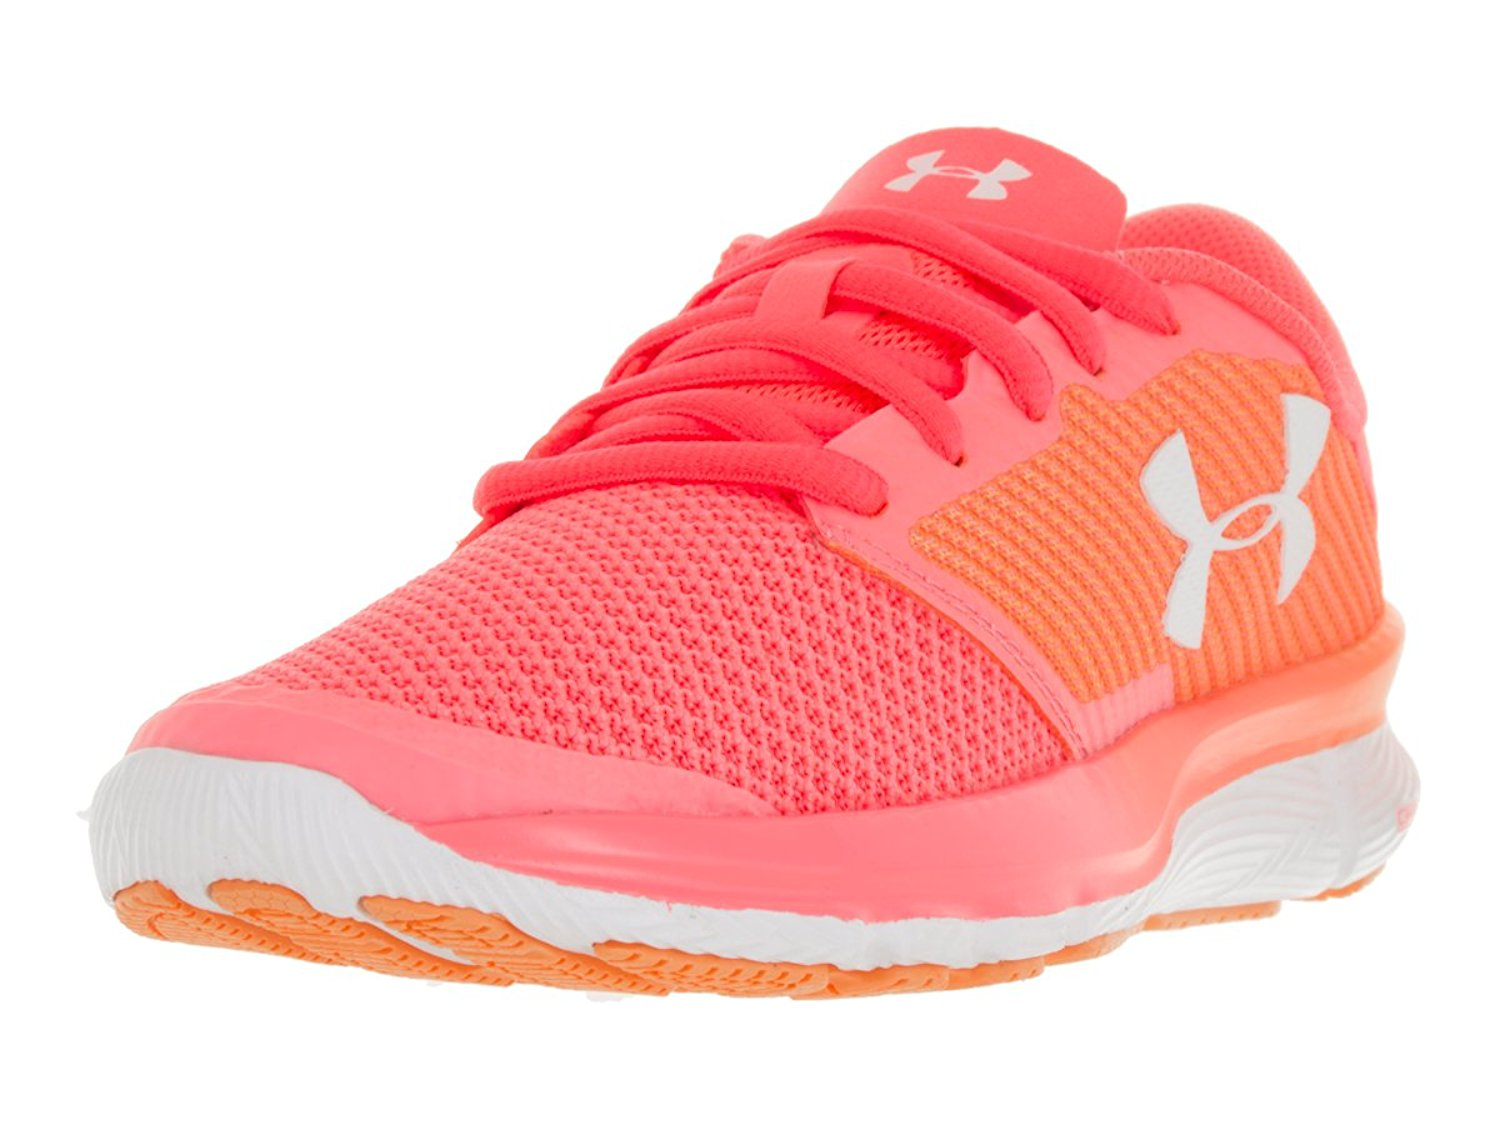 under armor women's shoes